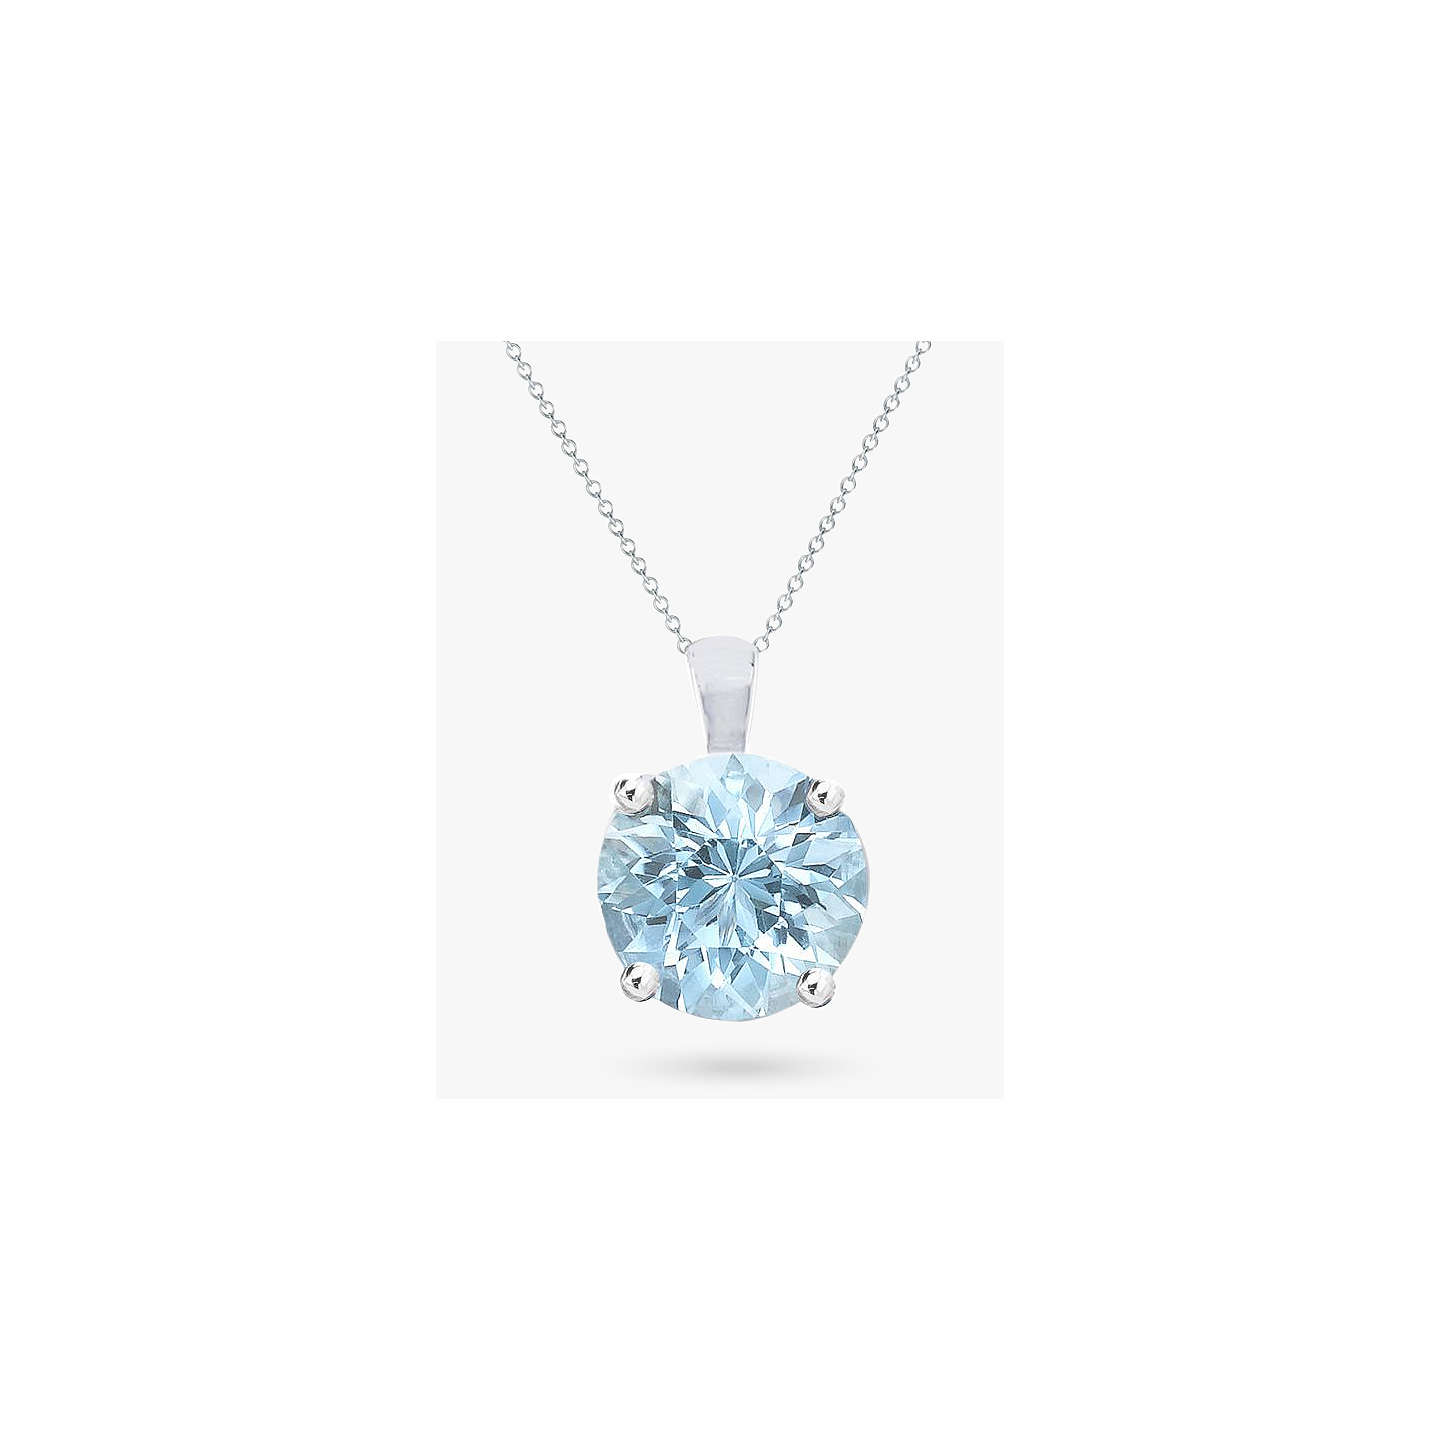 diamond aaa necklaces marine aquamarine pendants n necklace pendant set aqua round wg solitaire bezel